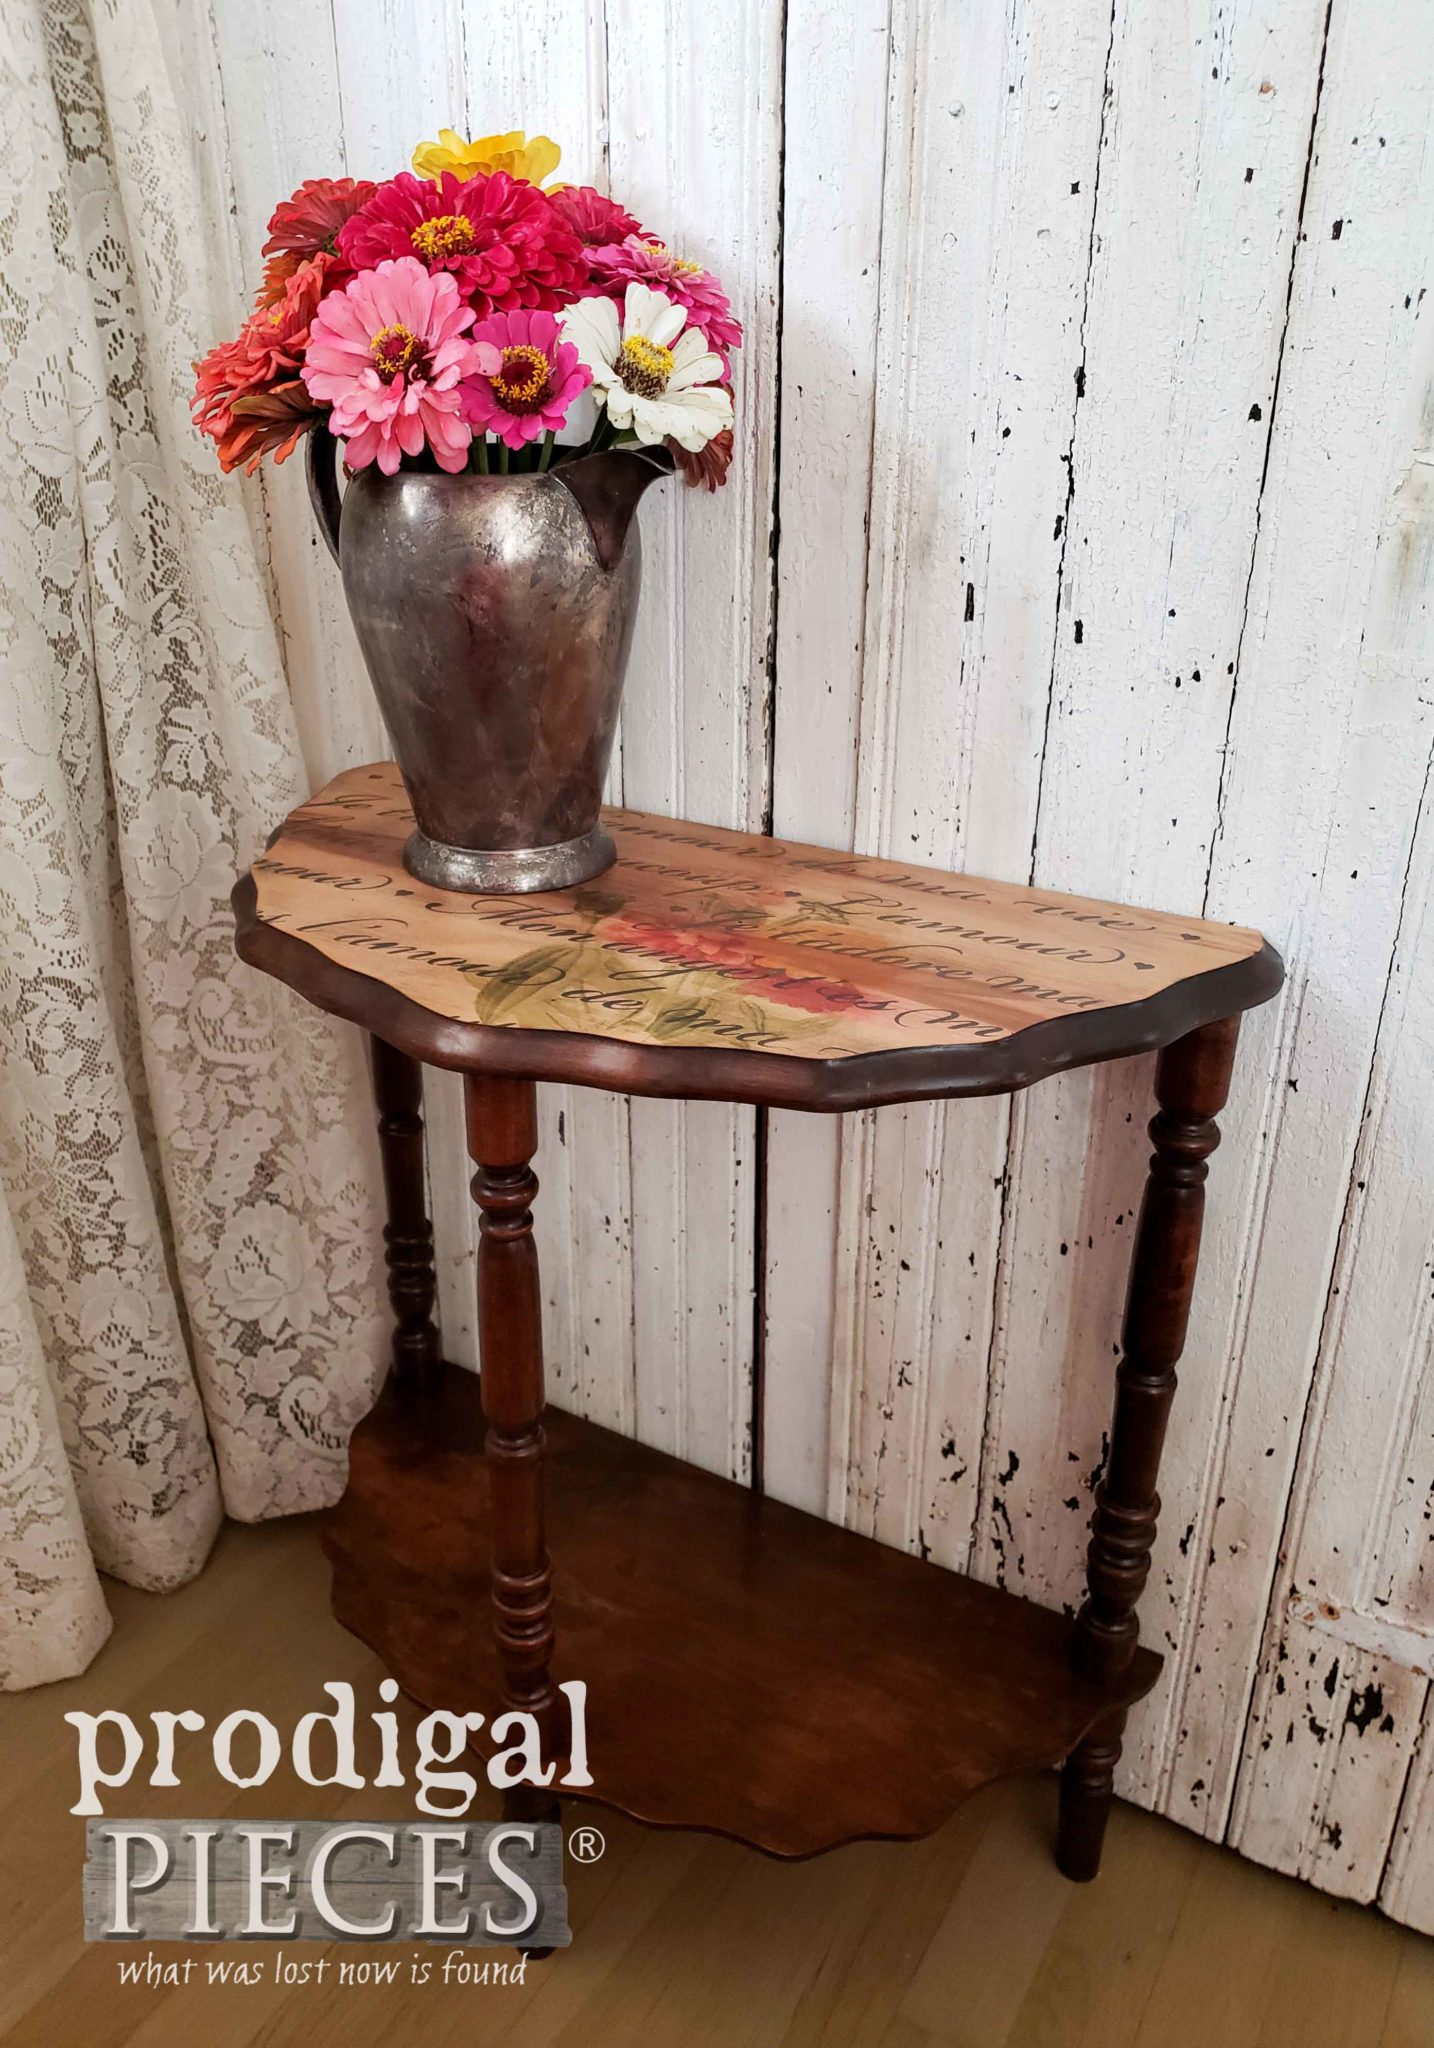 Vintage Side Table Restored from Damage with French Script Stencil and DIY Image Transfer by Larissa of Prodigal Pieces | prodigalpieces.com